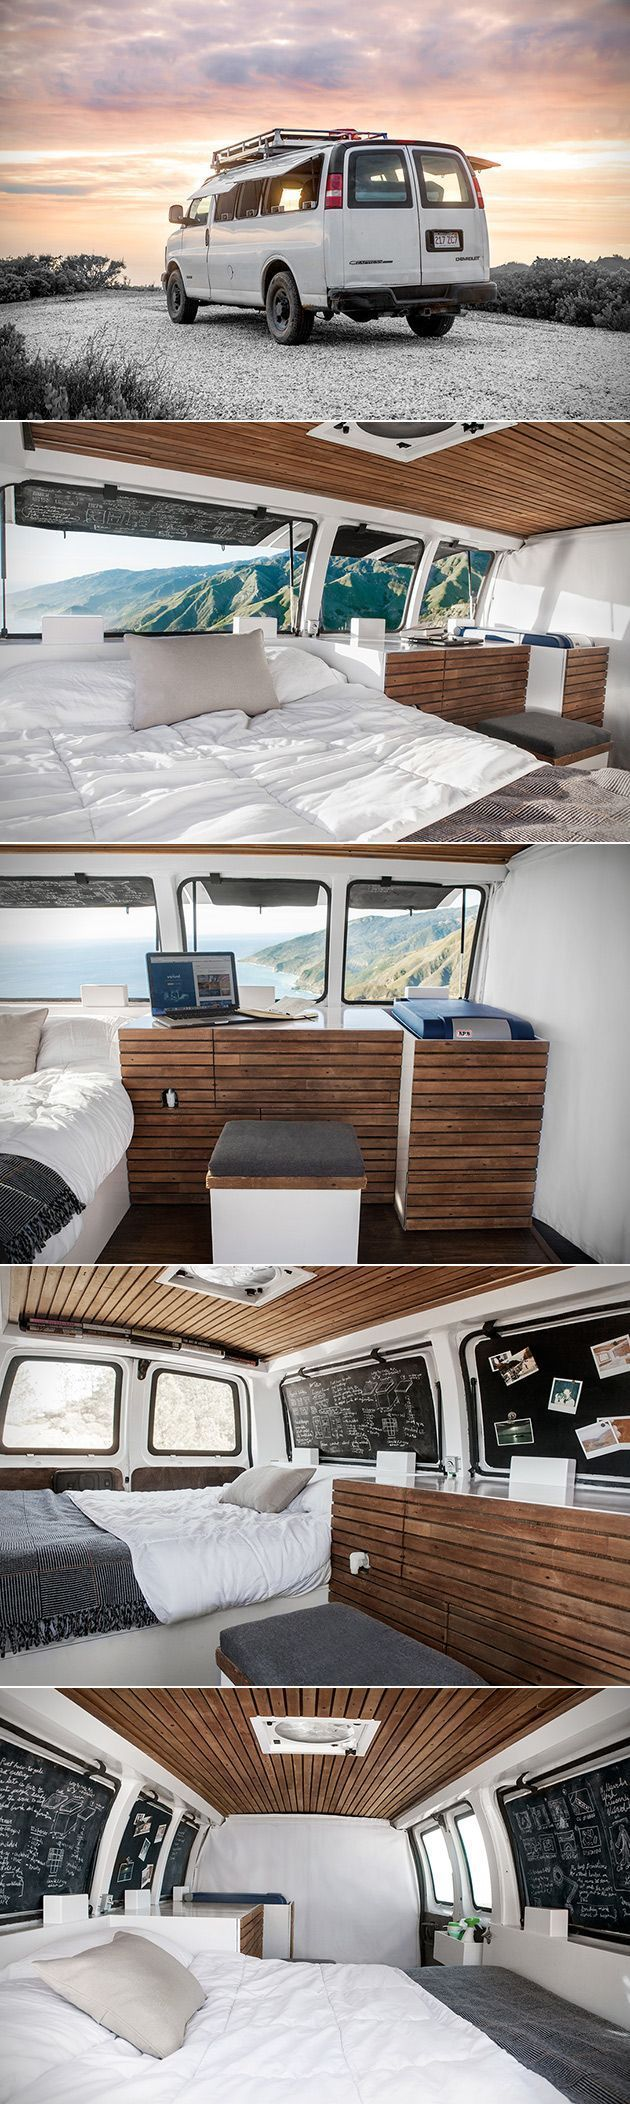 28 Genius RV Hacks, Remodel & Makeover Ideas That Make Living an RV is Awesome